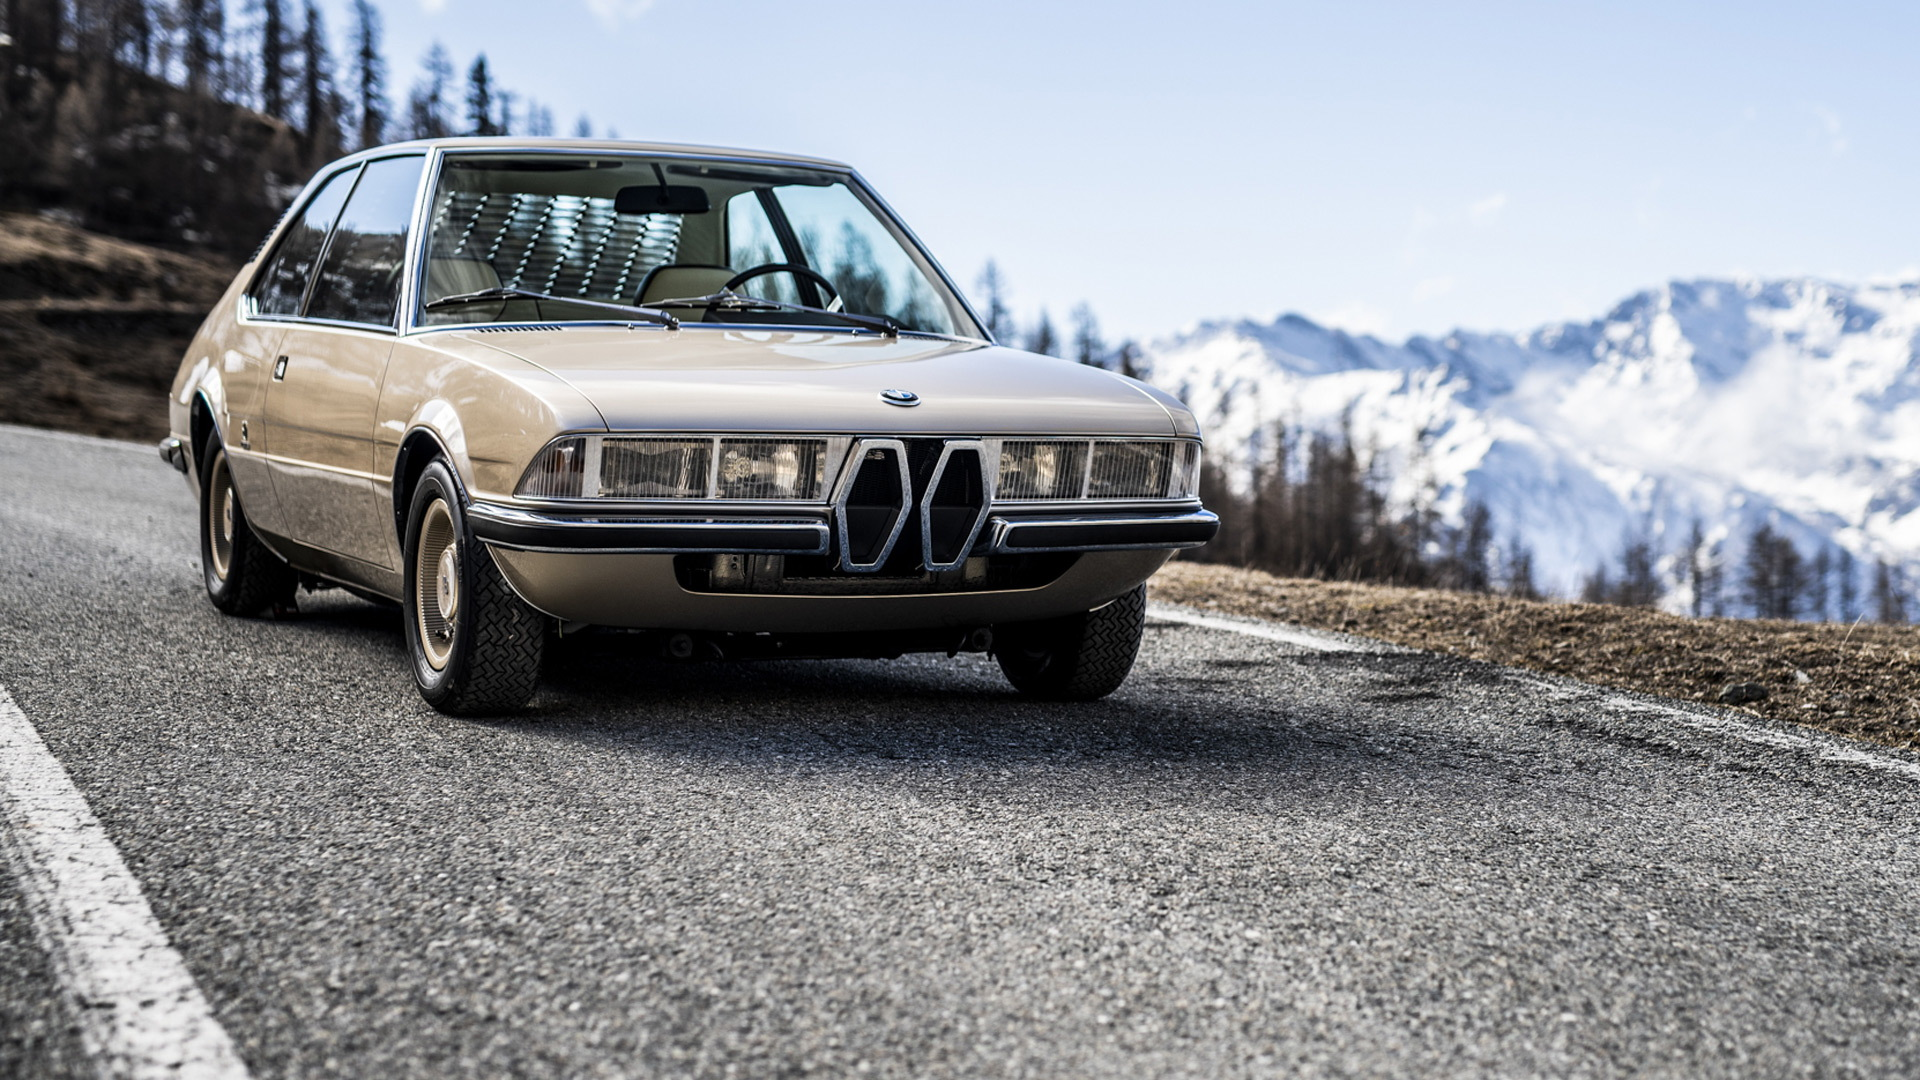 BMW Garmisch recreation